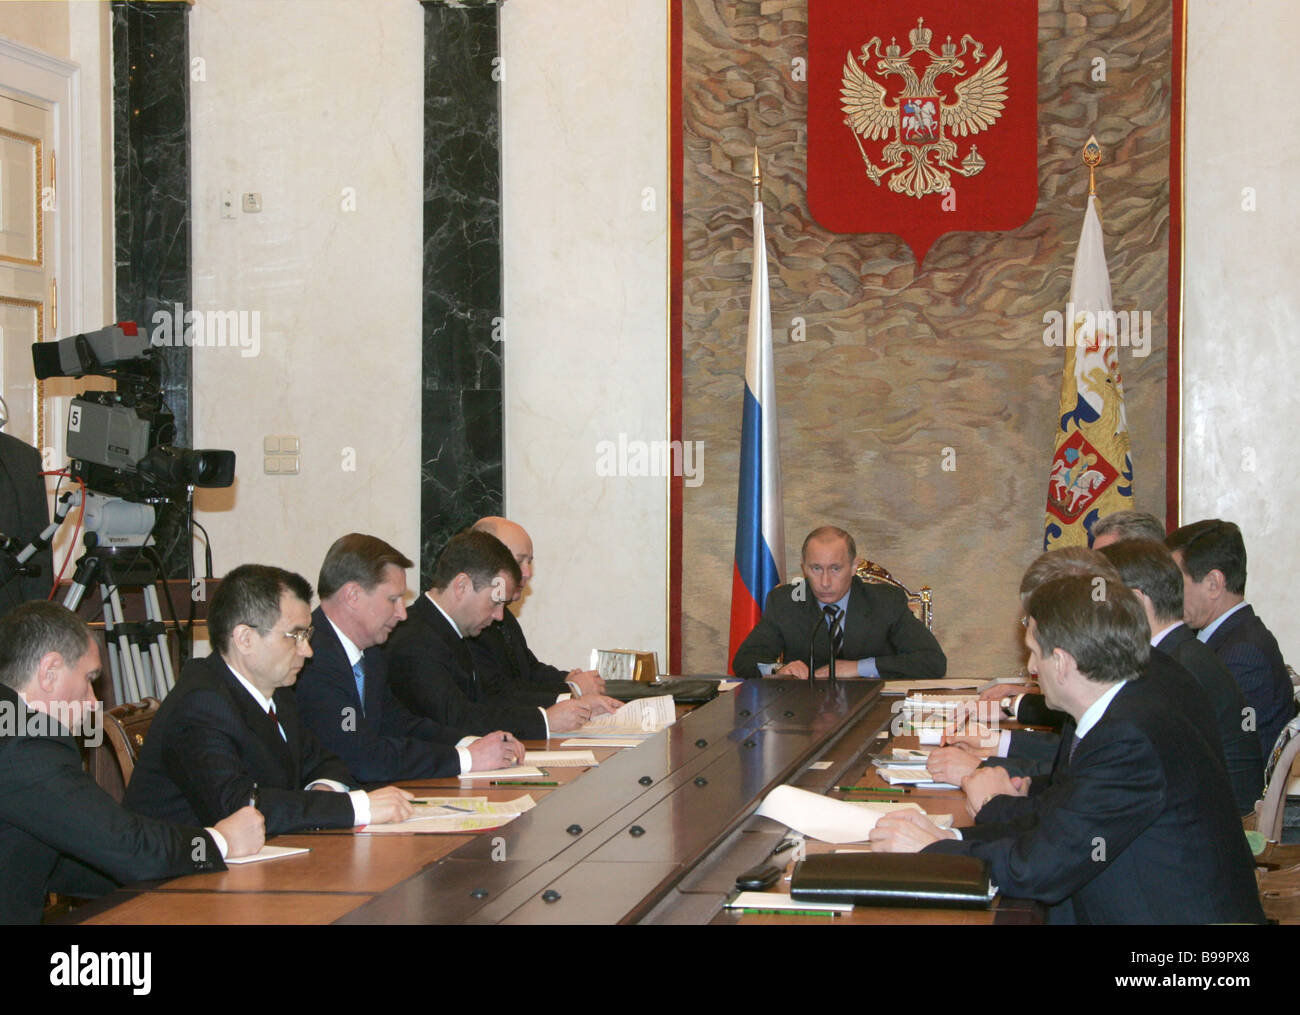 Russian President Vladimir Putin center at a cabinet meeting in the Kremlin - Stock Image